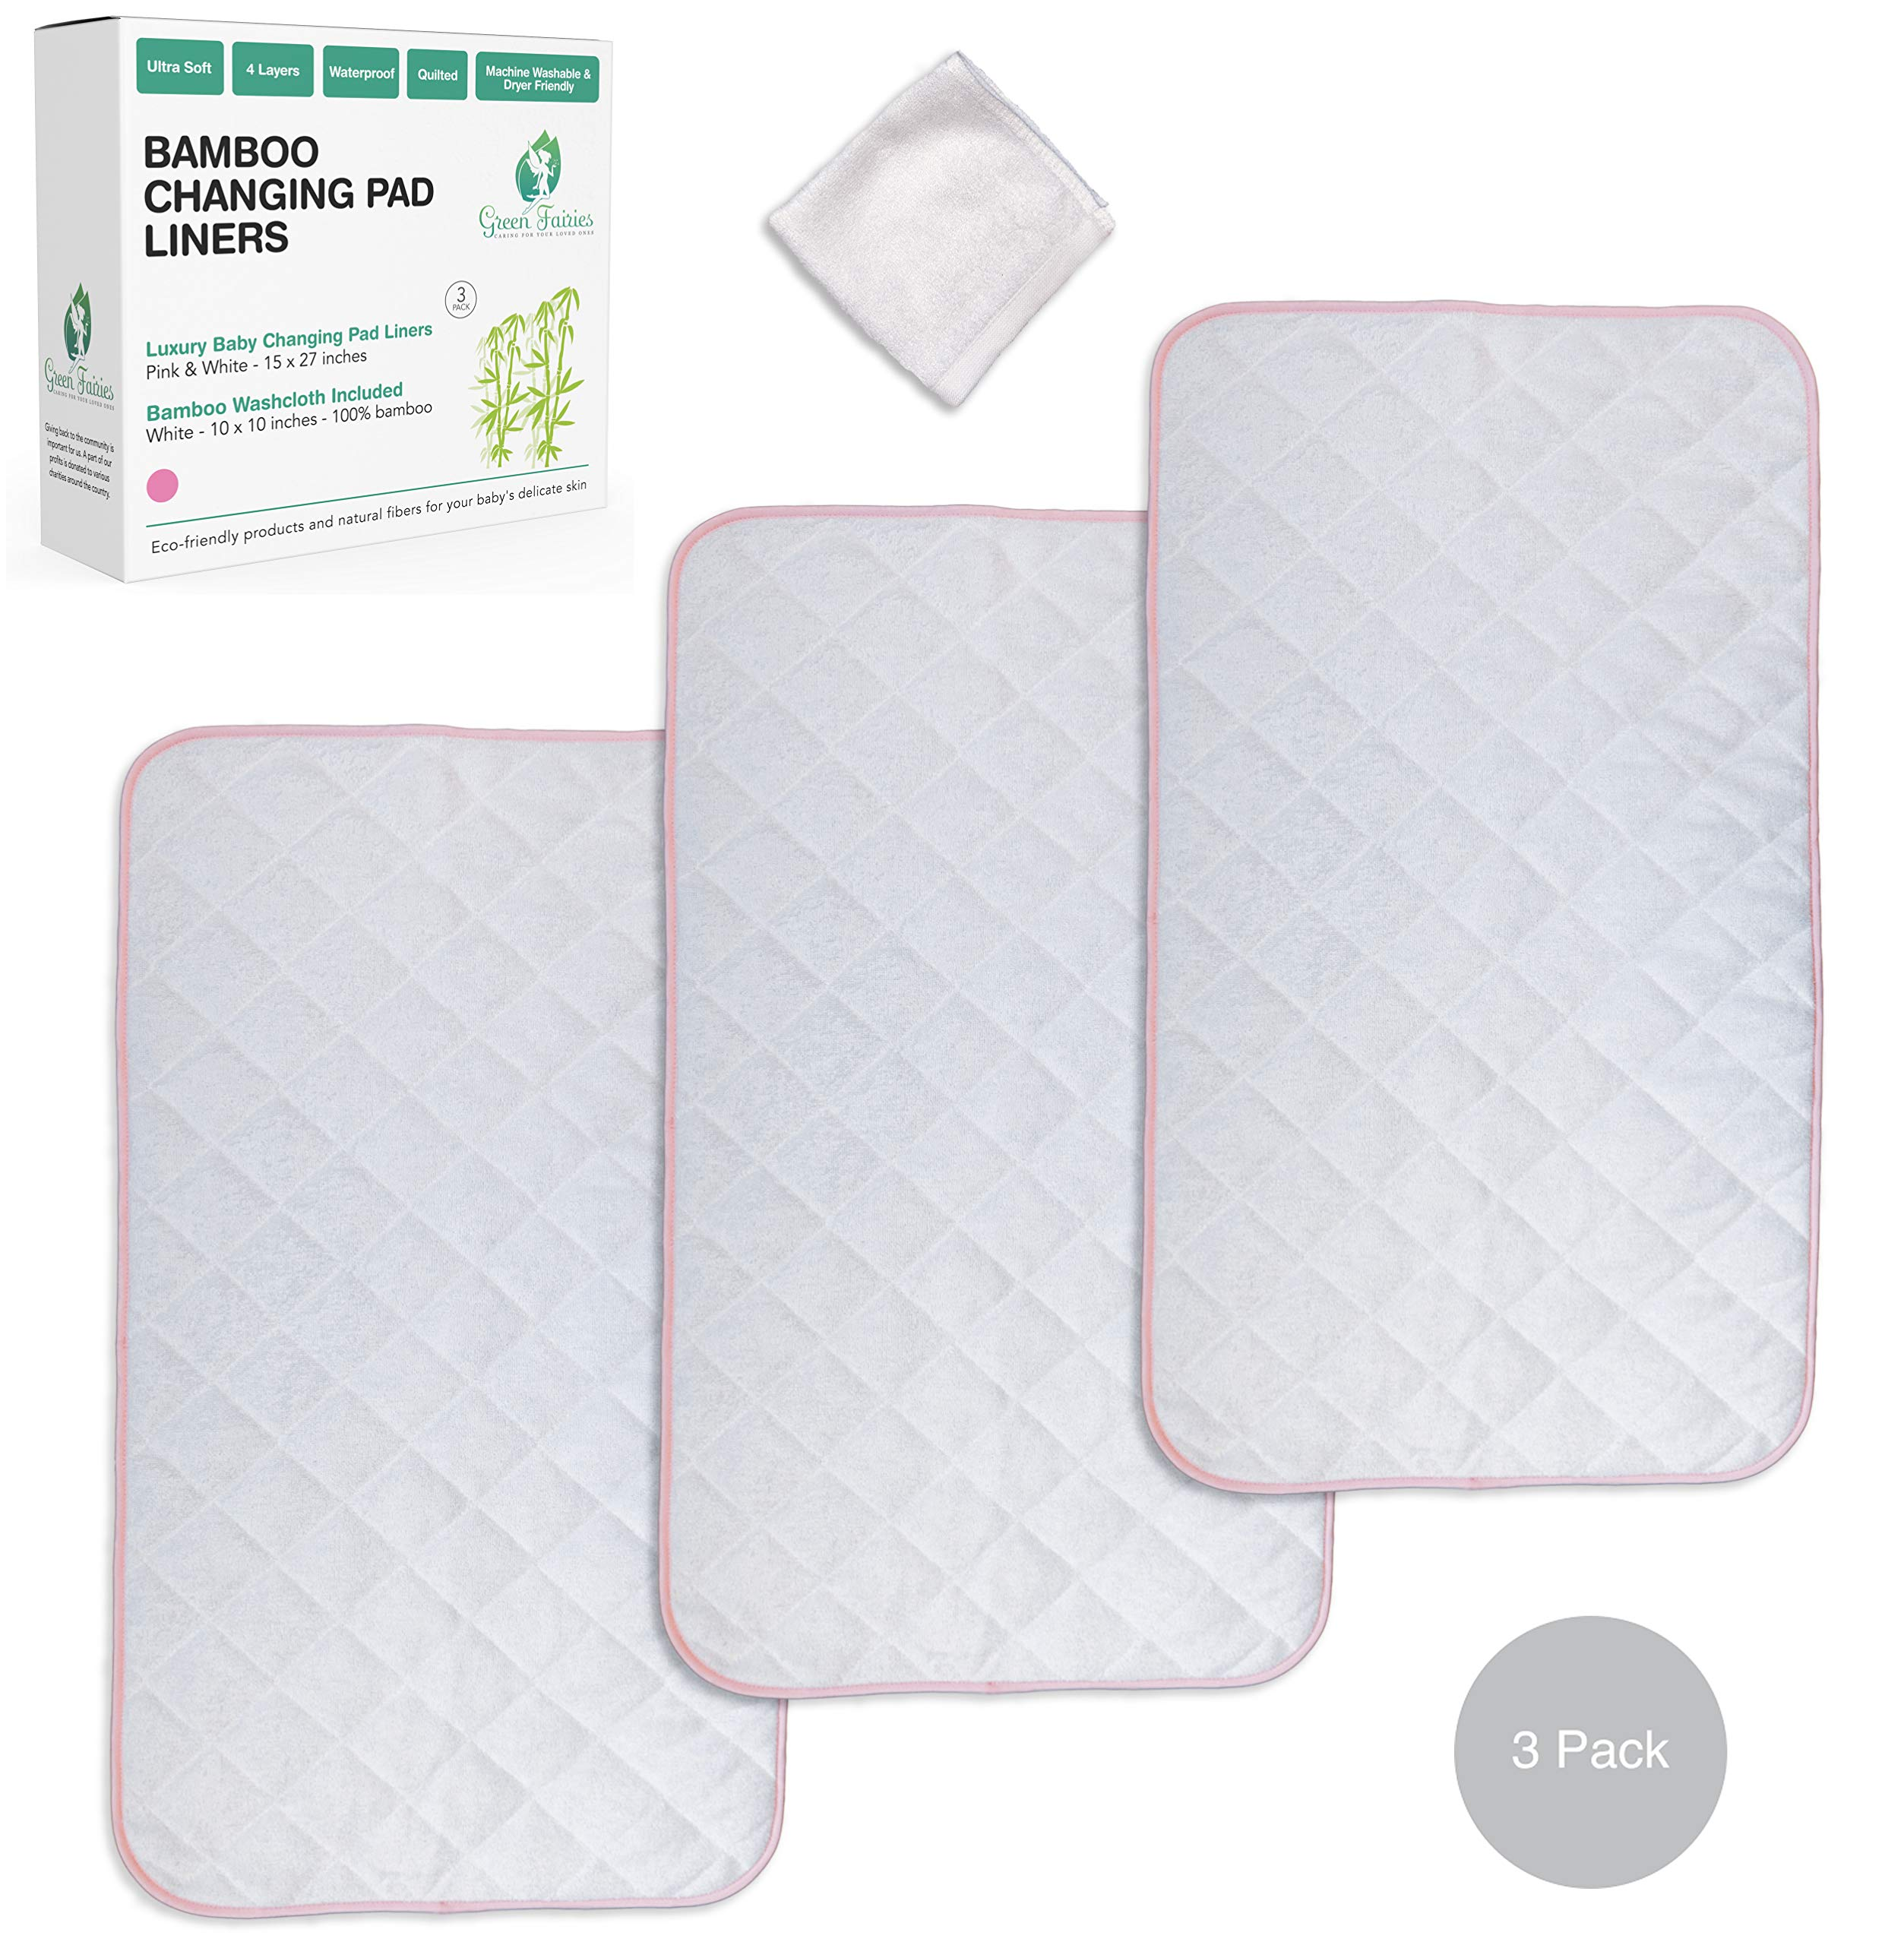 Extra Soft Bamboo Changing Pad Liners (3 Pack) and Washcloth   Pink and White   15 x 27 inches Diaper Changing Mats for Newborn, Infant and Toddler   Great Baby Gift   Waterproof, Washable, Reusable